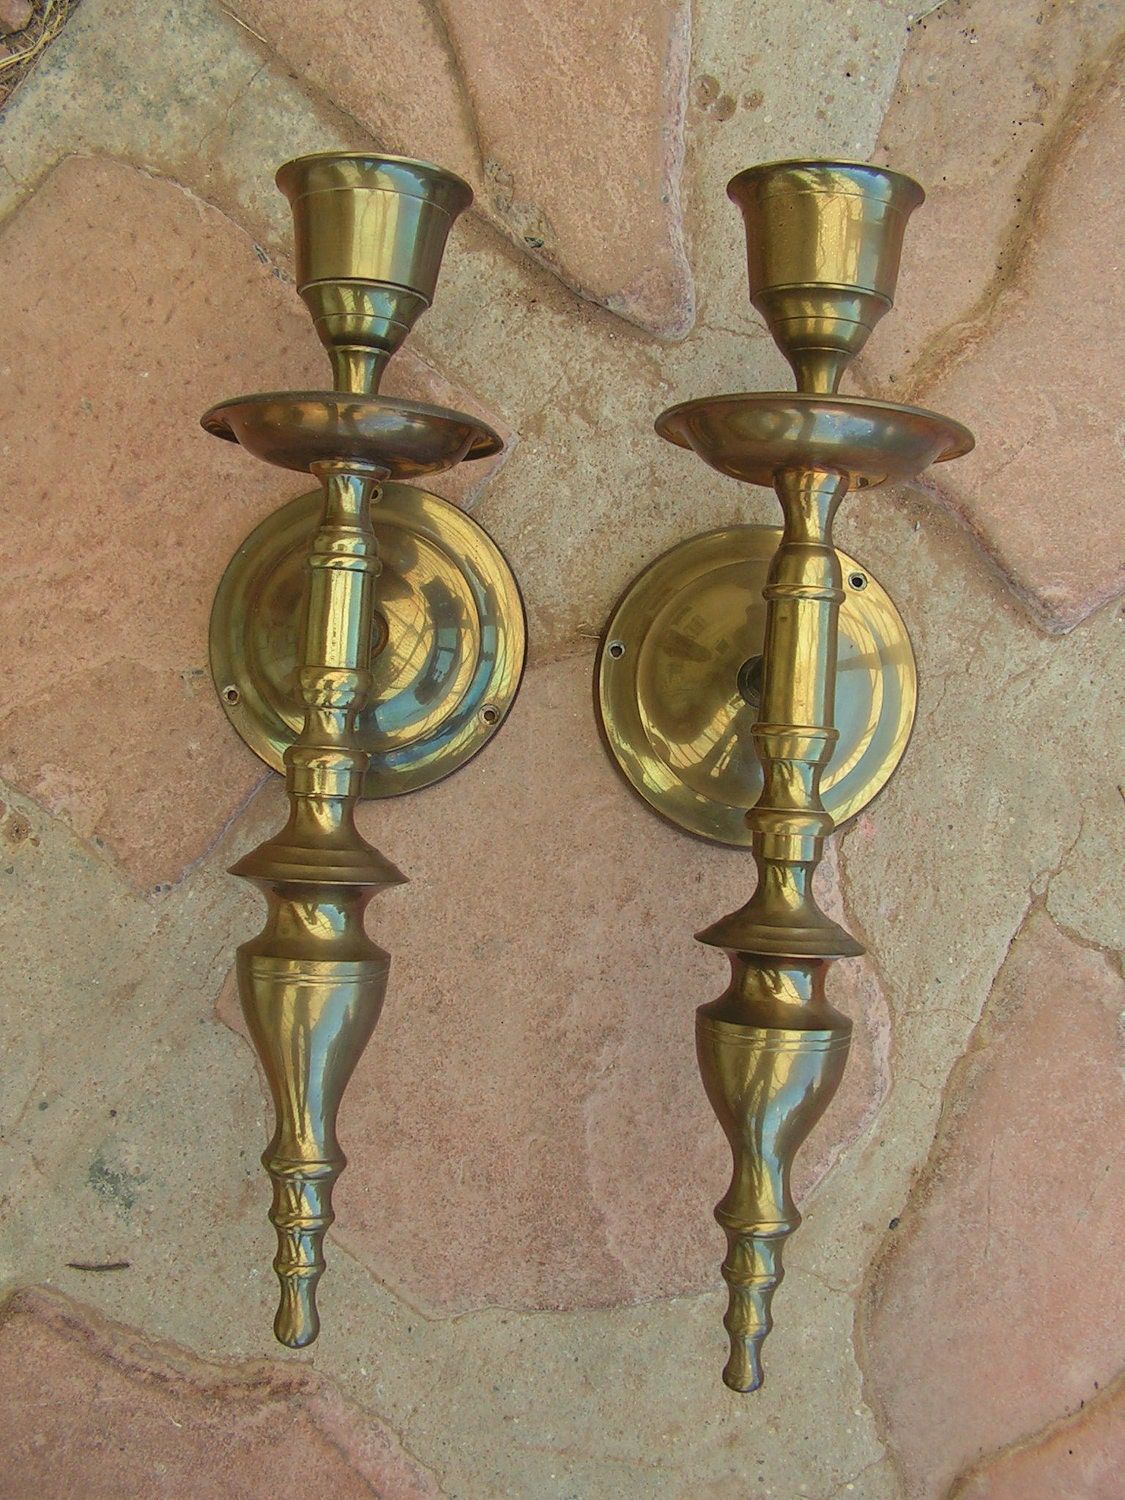 Large Wall Sconces With Candles : Vintage Brass Wall Sconces Candle Holders Large by retrosideshow